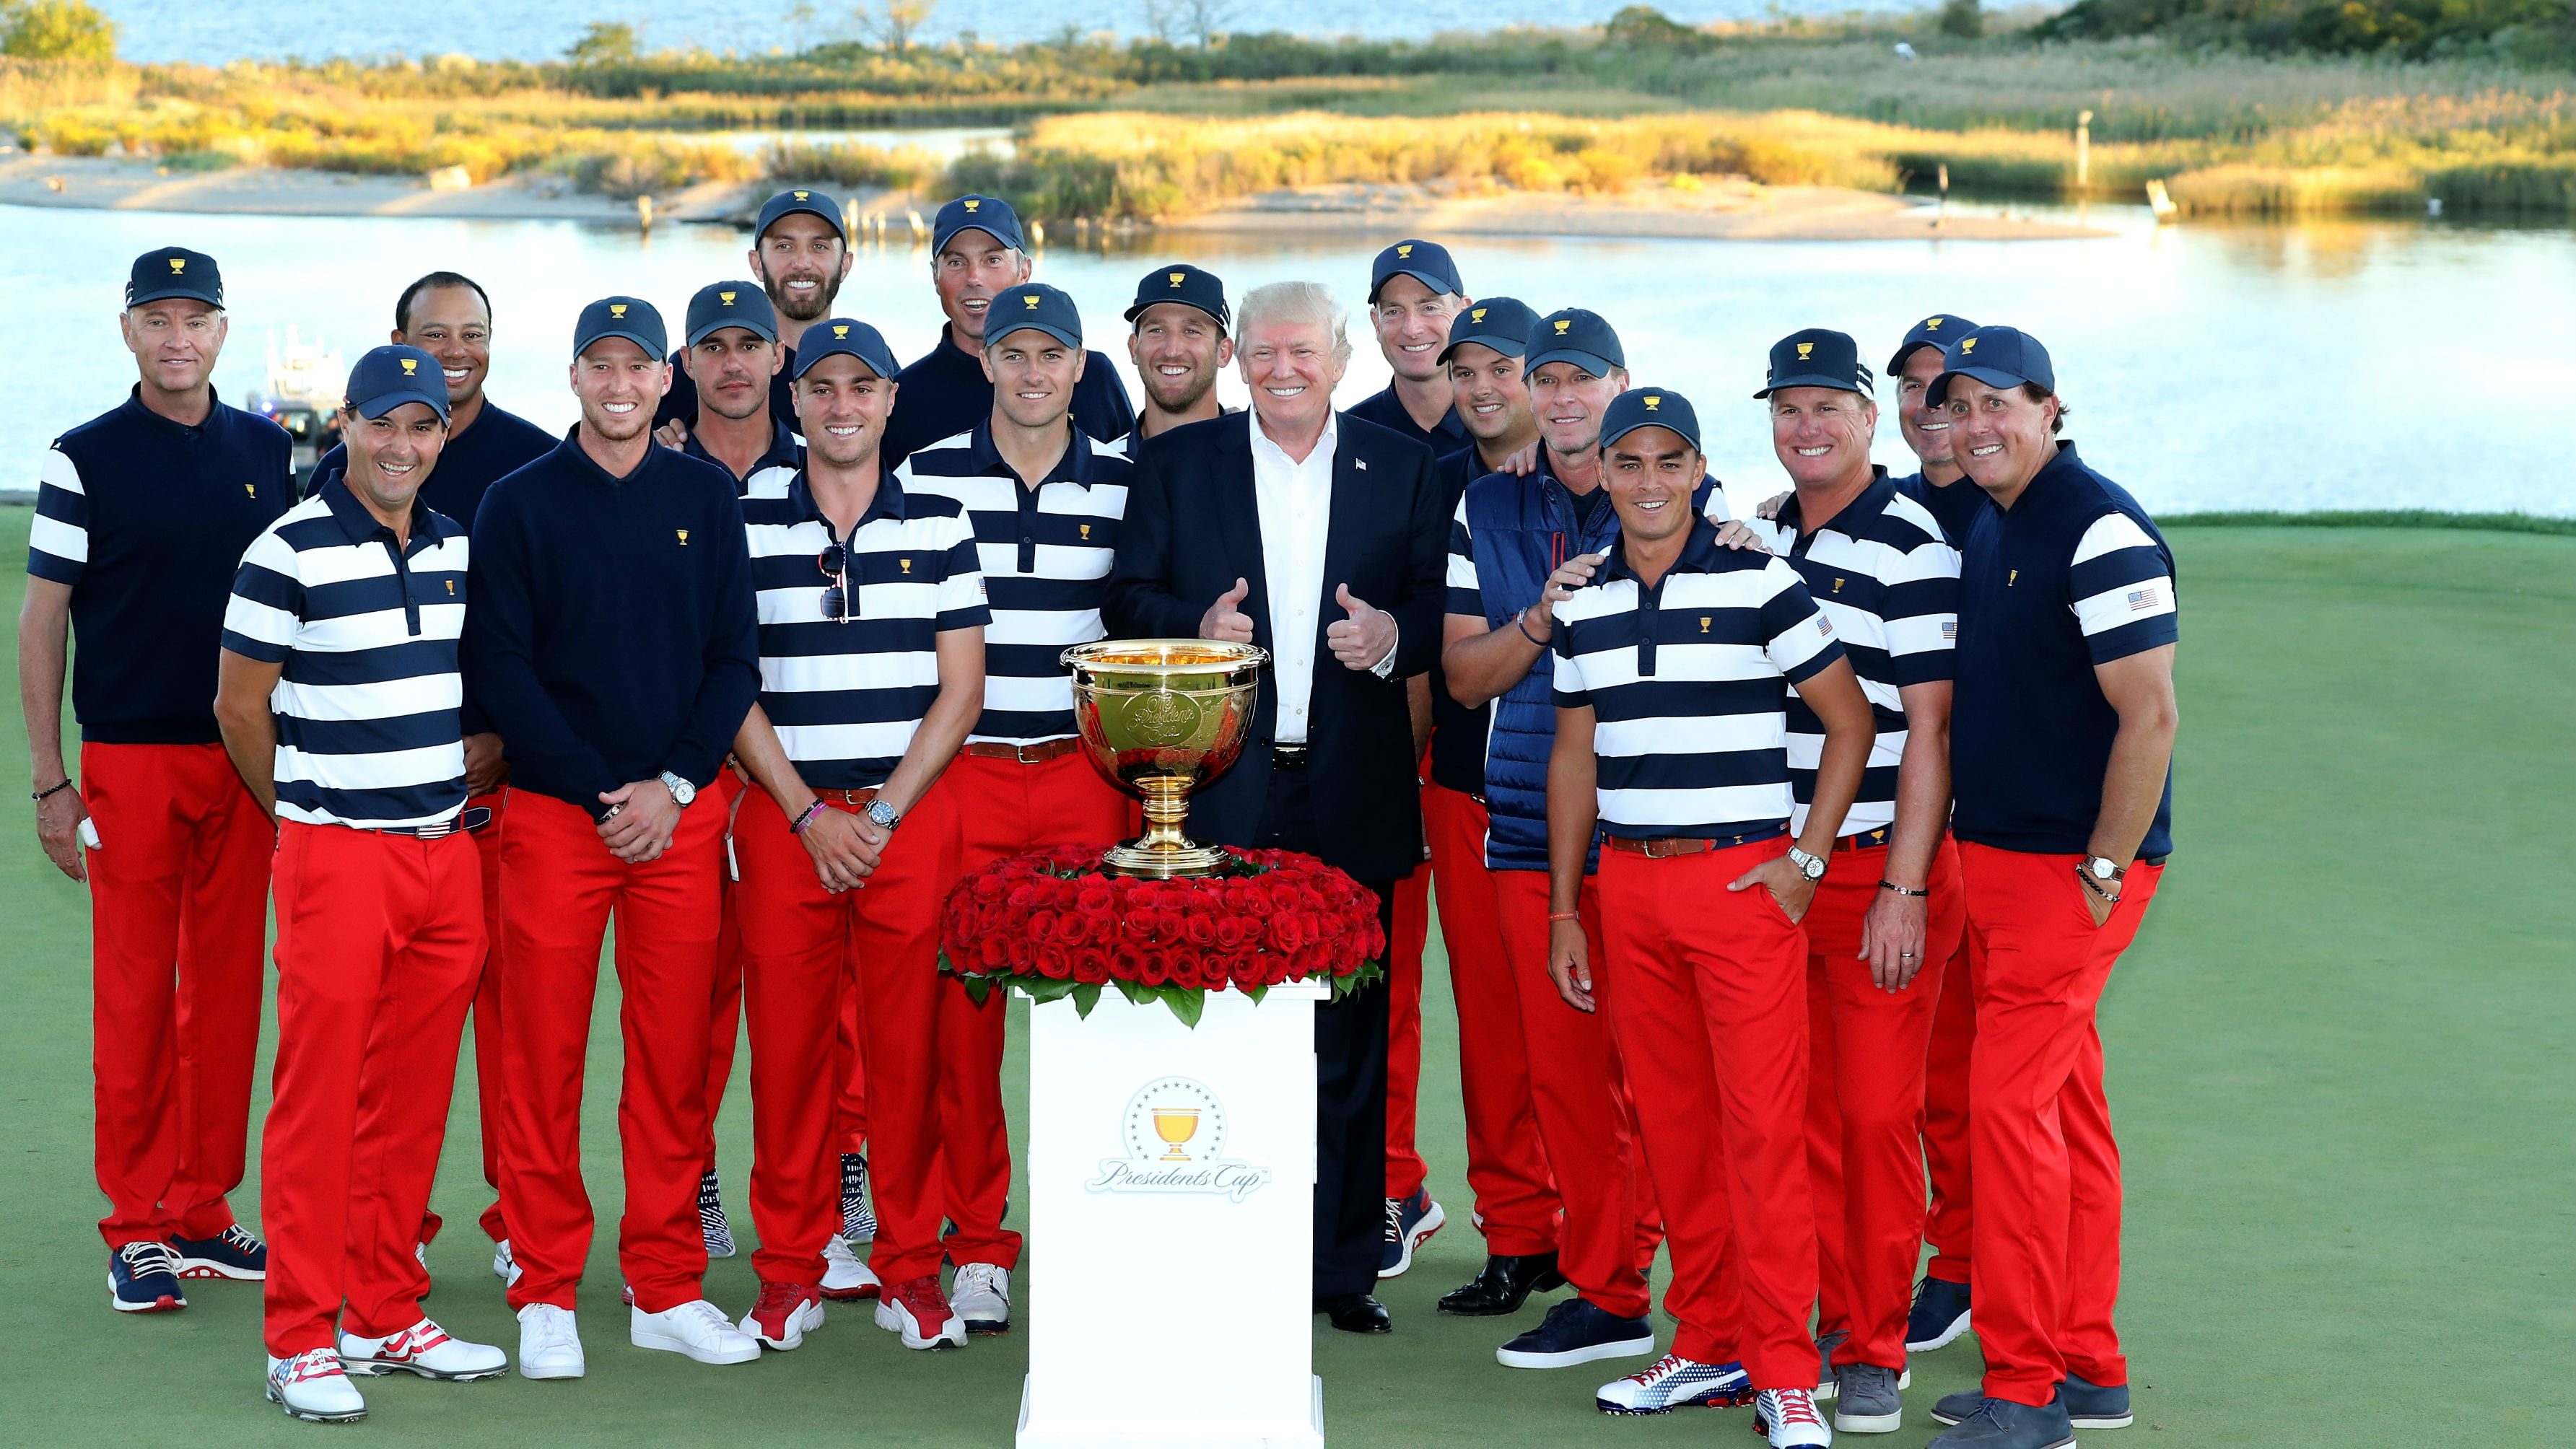 Sunday's golf: USA wins 7th straight Presidents Cup